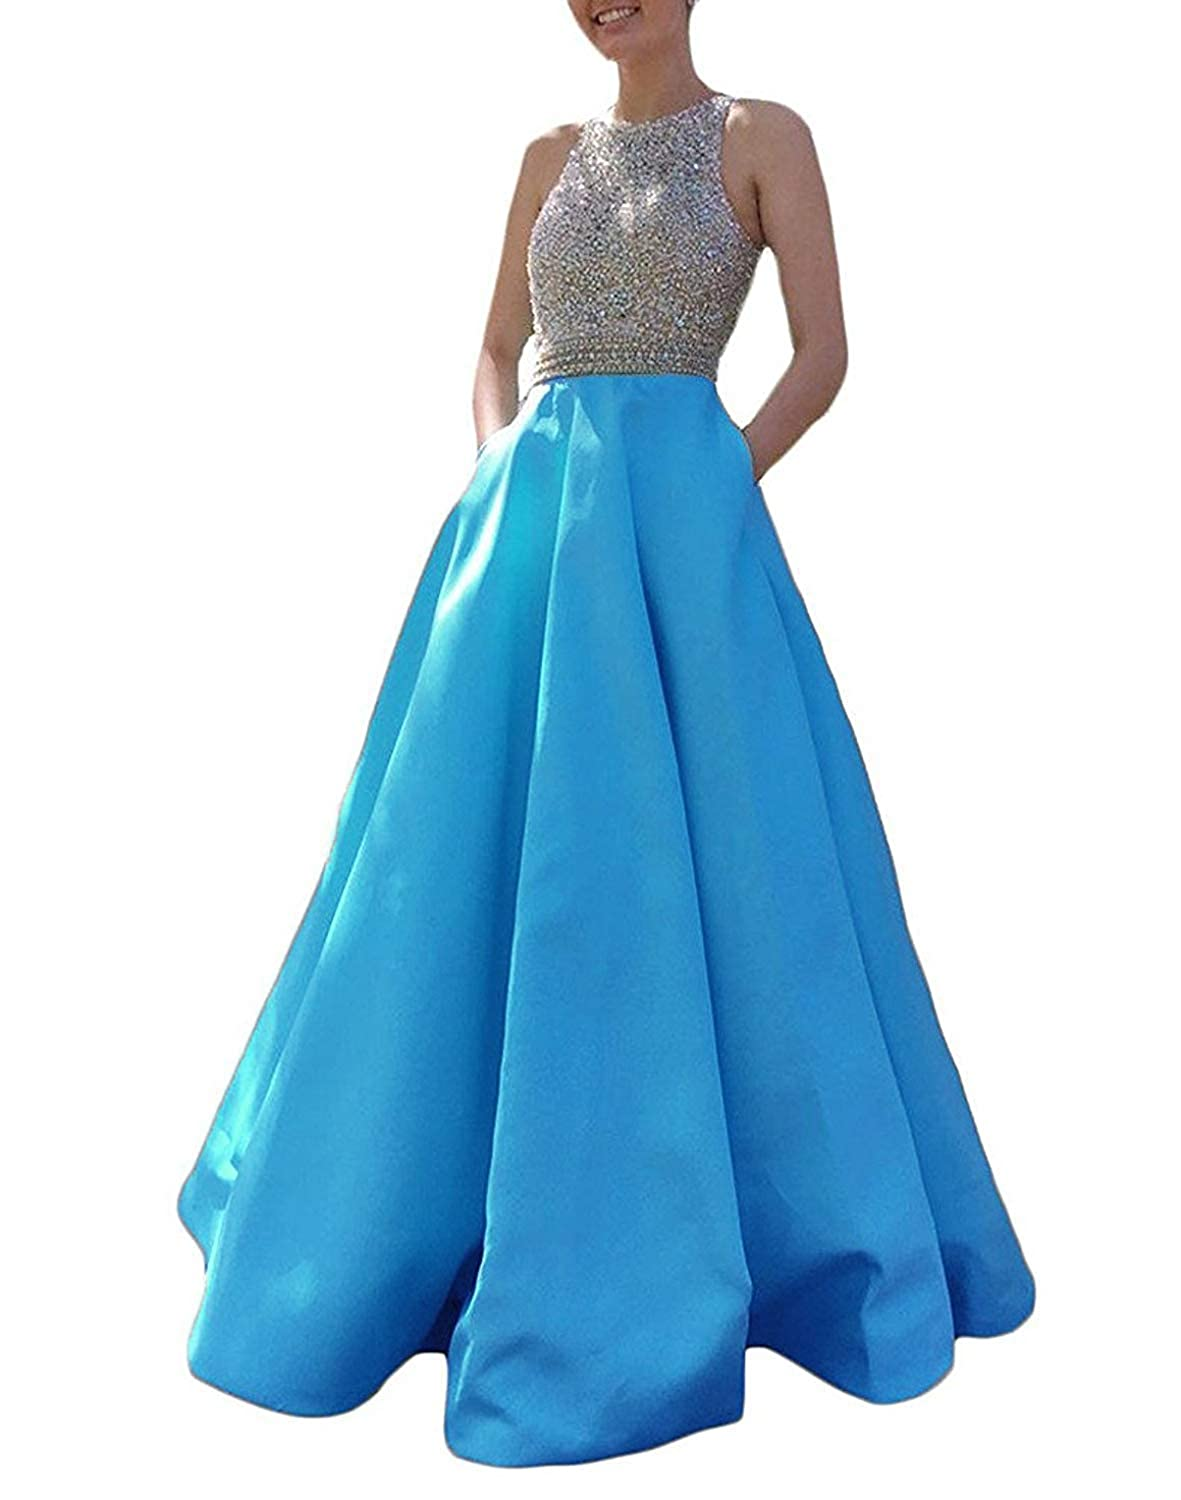 bluee Promworld Women's Crystal Beaded Prom Dress Long Satin A Line Open Back Evening Party Dress with Pocket